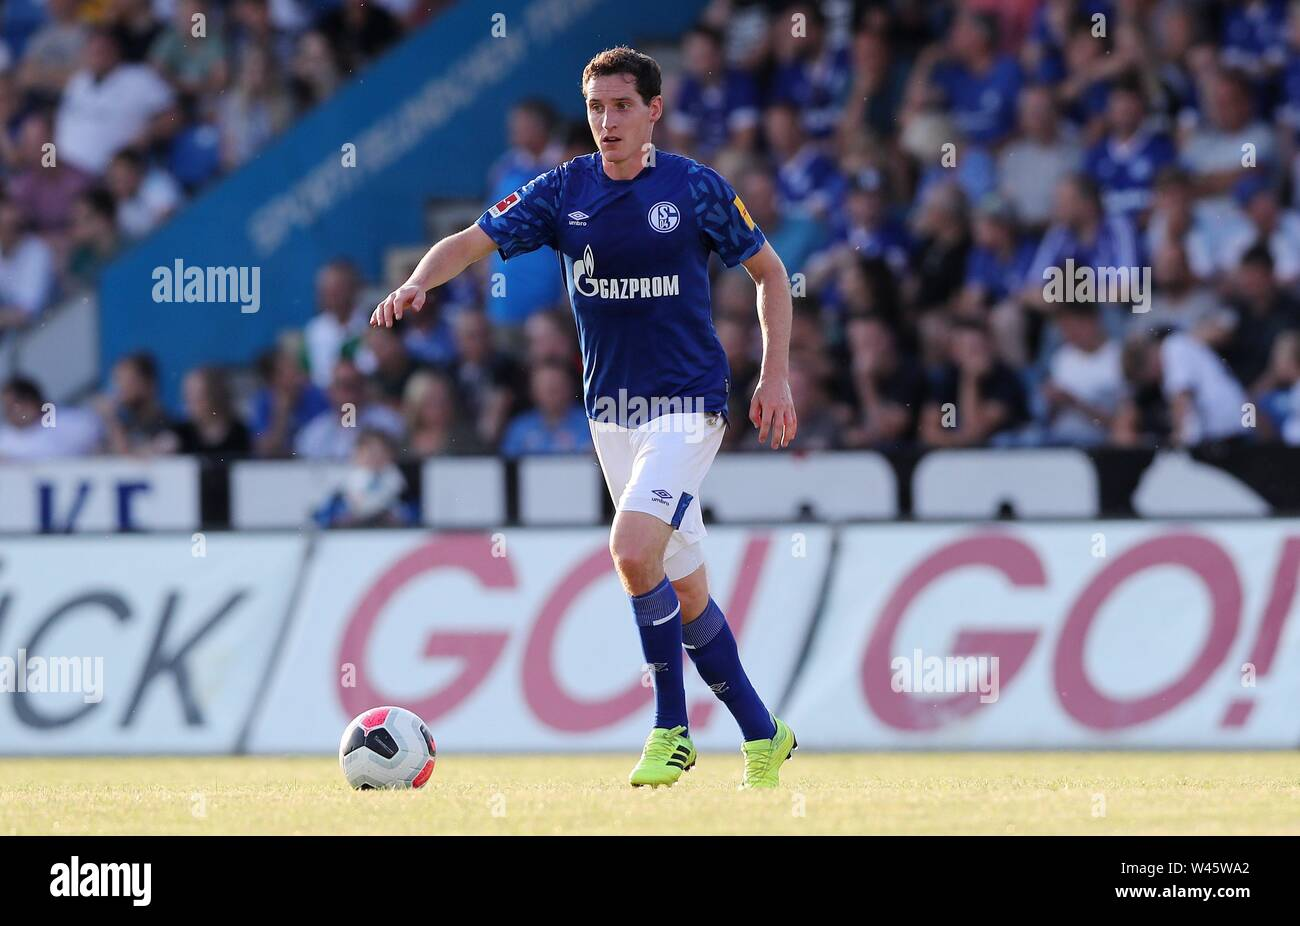 Lotte, Deutschland. 19th July, 2019. firo: 19.07.2019, football, 1.Bundesliga, season 2019/2020, friendly match, FC Schalke 04 - Norwich City Sebastian RUDY, Schalke, single action | usage worldwide Credit: dpa/Alamy Live News - Stock Image